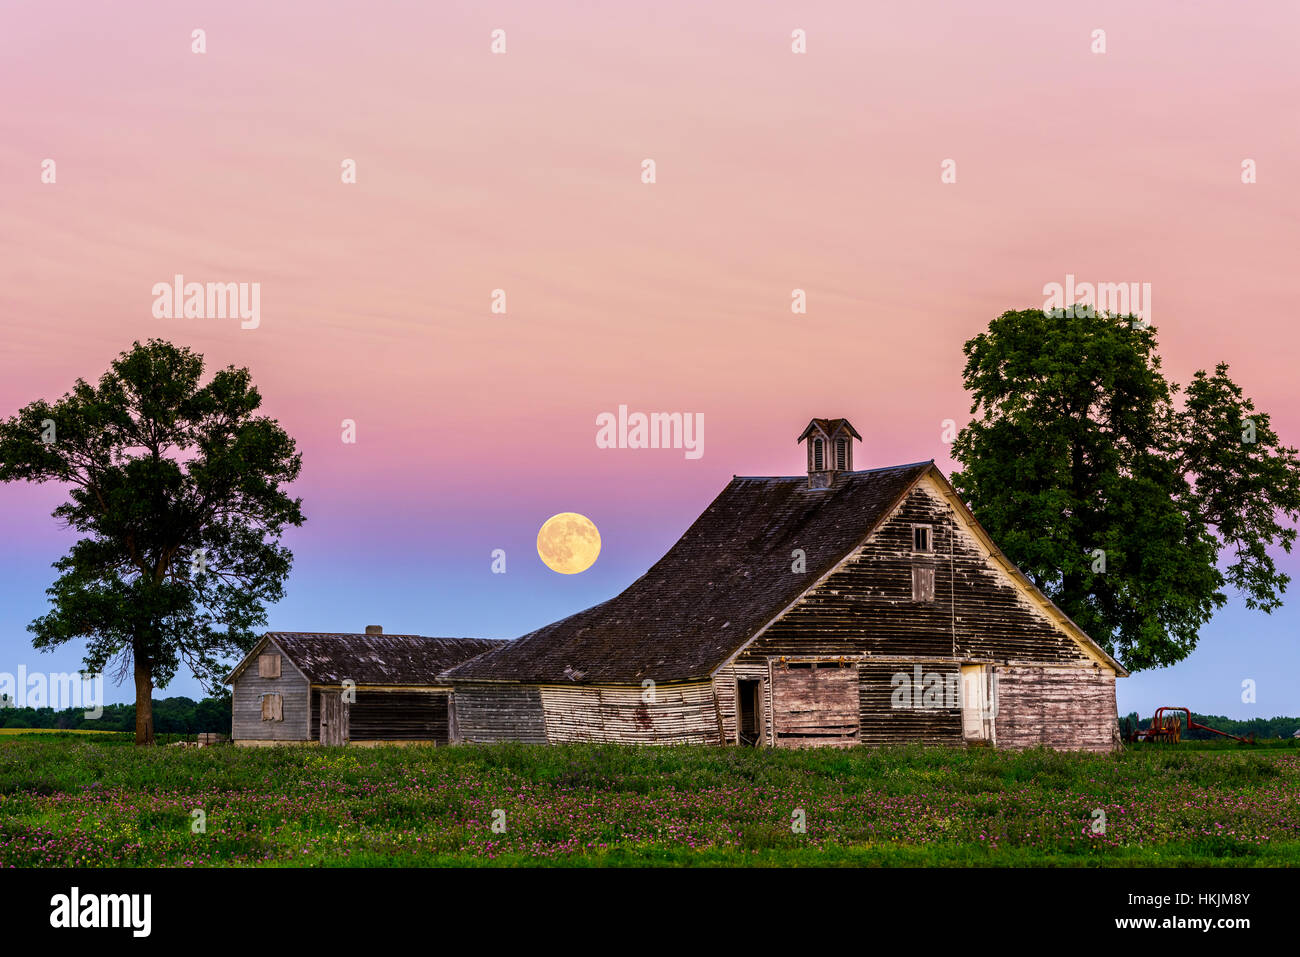 Full moon over abandoned farmstead with clover flowers in foreground. - Stock Image